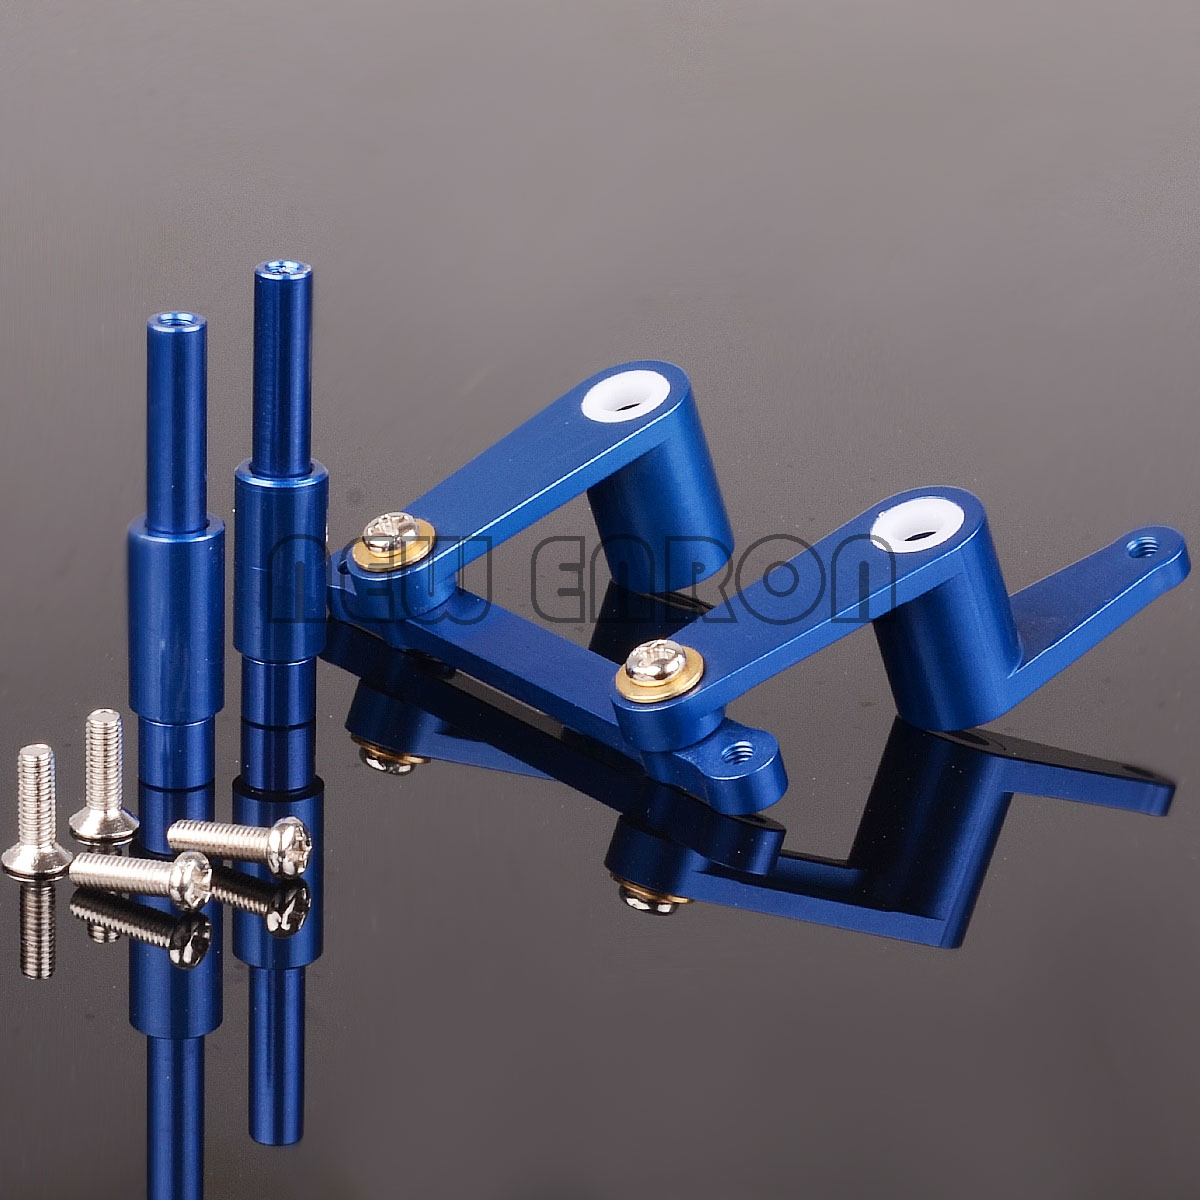 hight resolution of blue steering assembly 4943 for rc traxxas t maxx classic 4910 15 2 5 e maxx